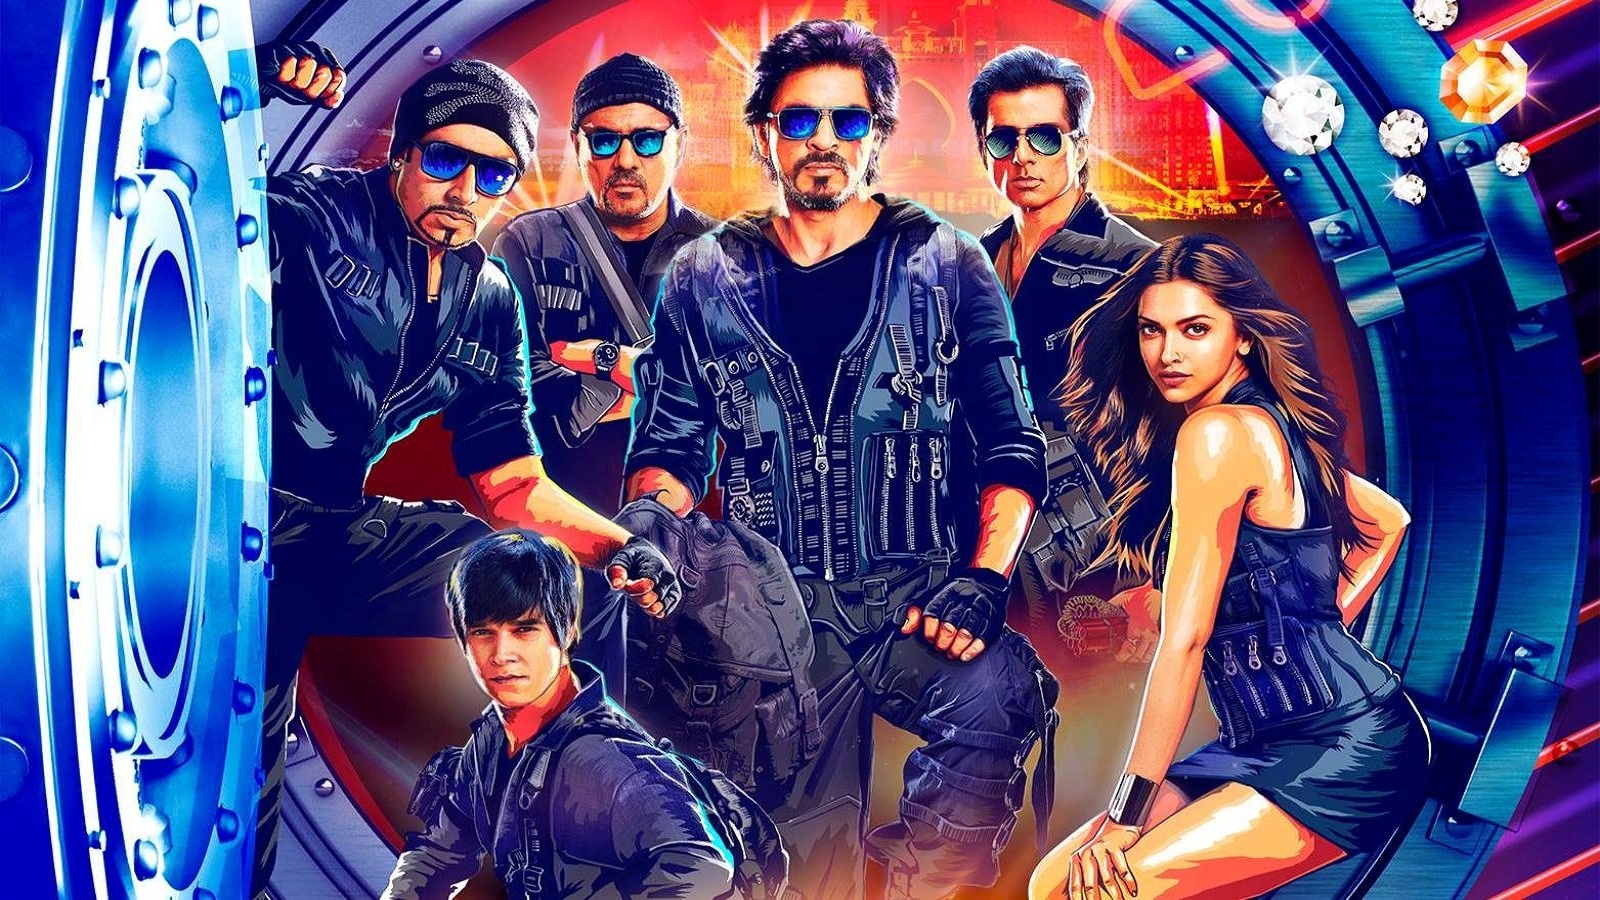 Happy new year 2014 bollywood movie 1600 x 900 download close